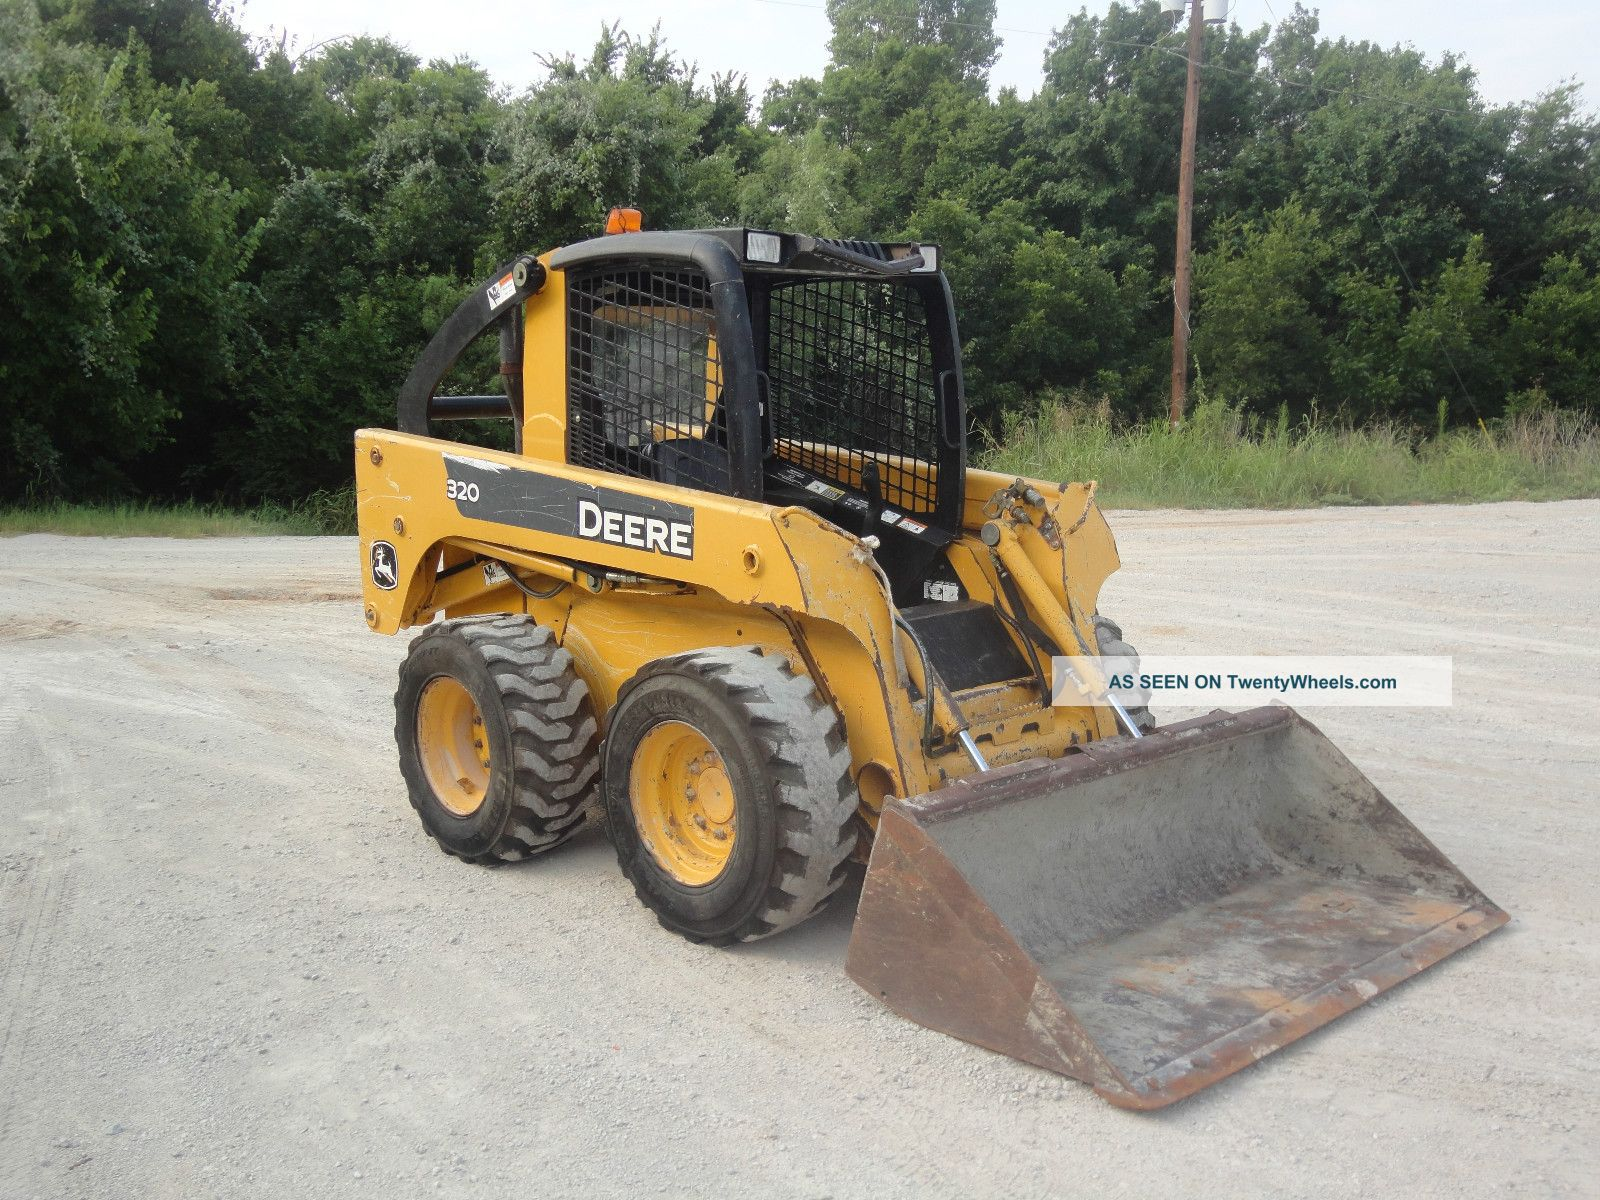 john deere 320 skid steer owners manual